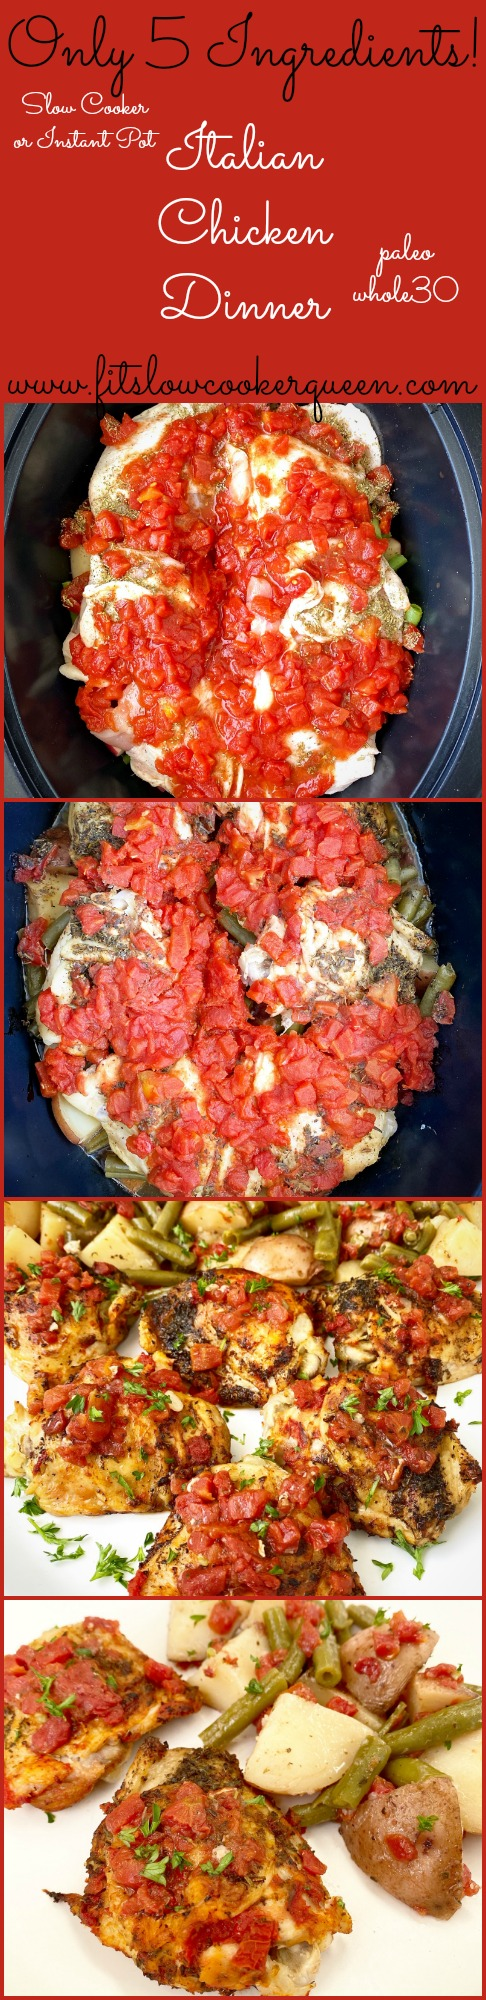 another pinterest pin for 5-Ingredient Slow Cooker_Instant Pot Italian Chicken Dinner (Paleo, Whole30)